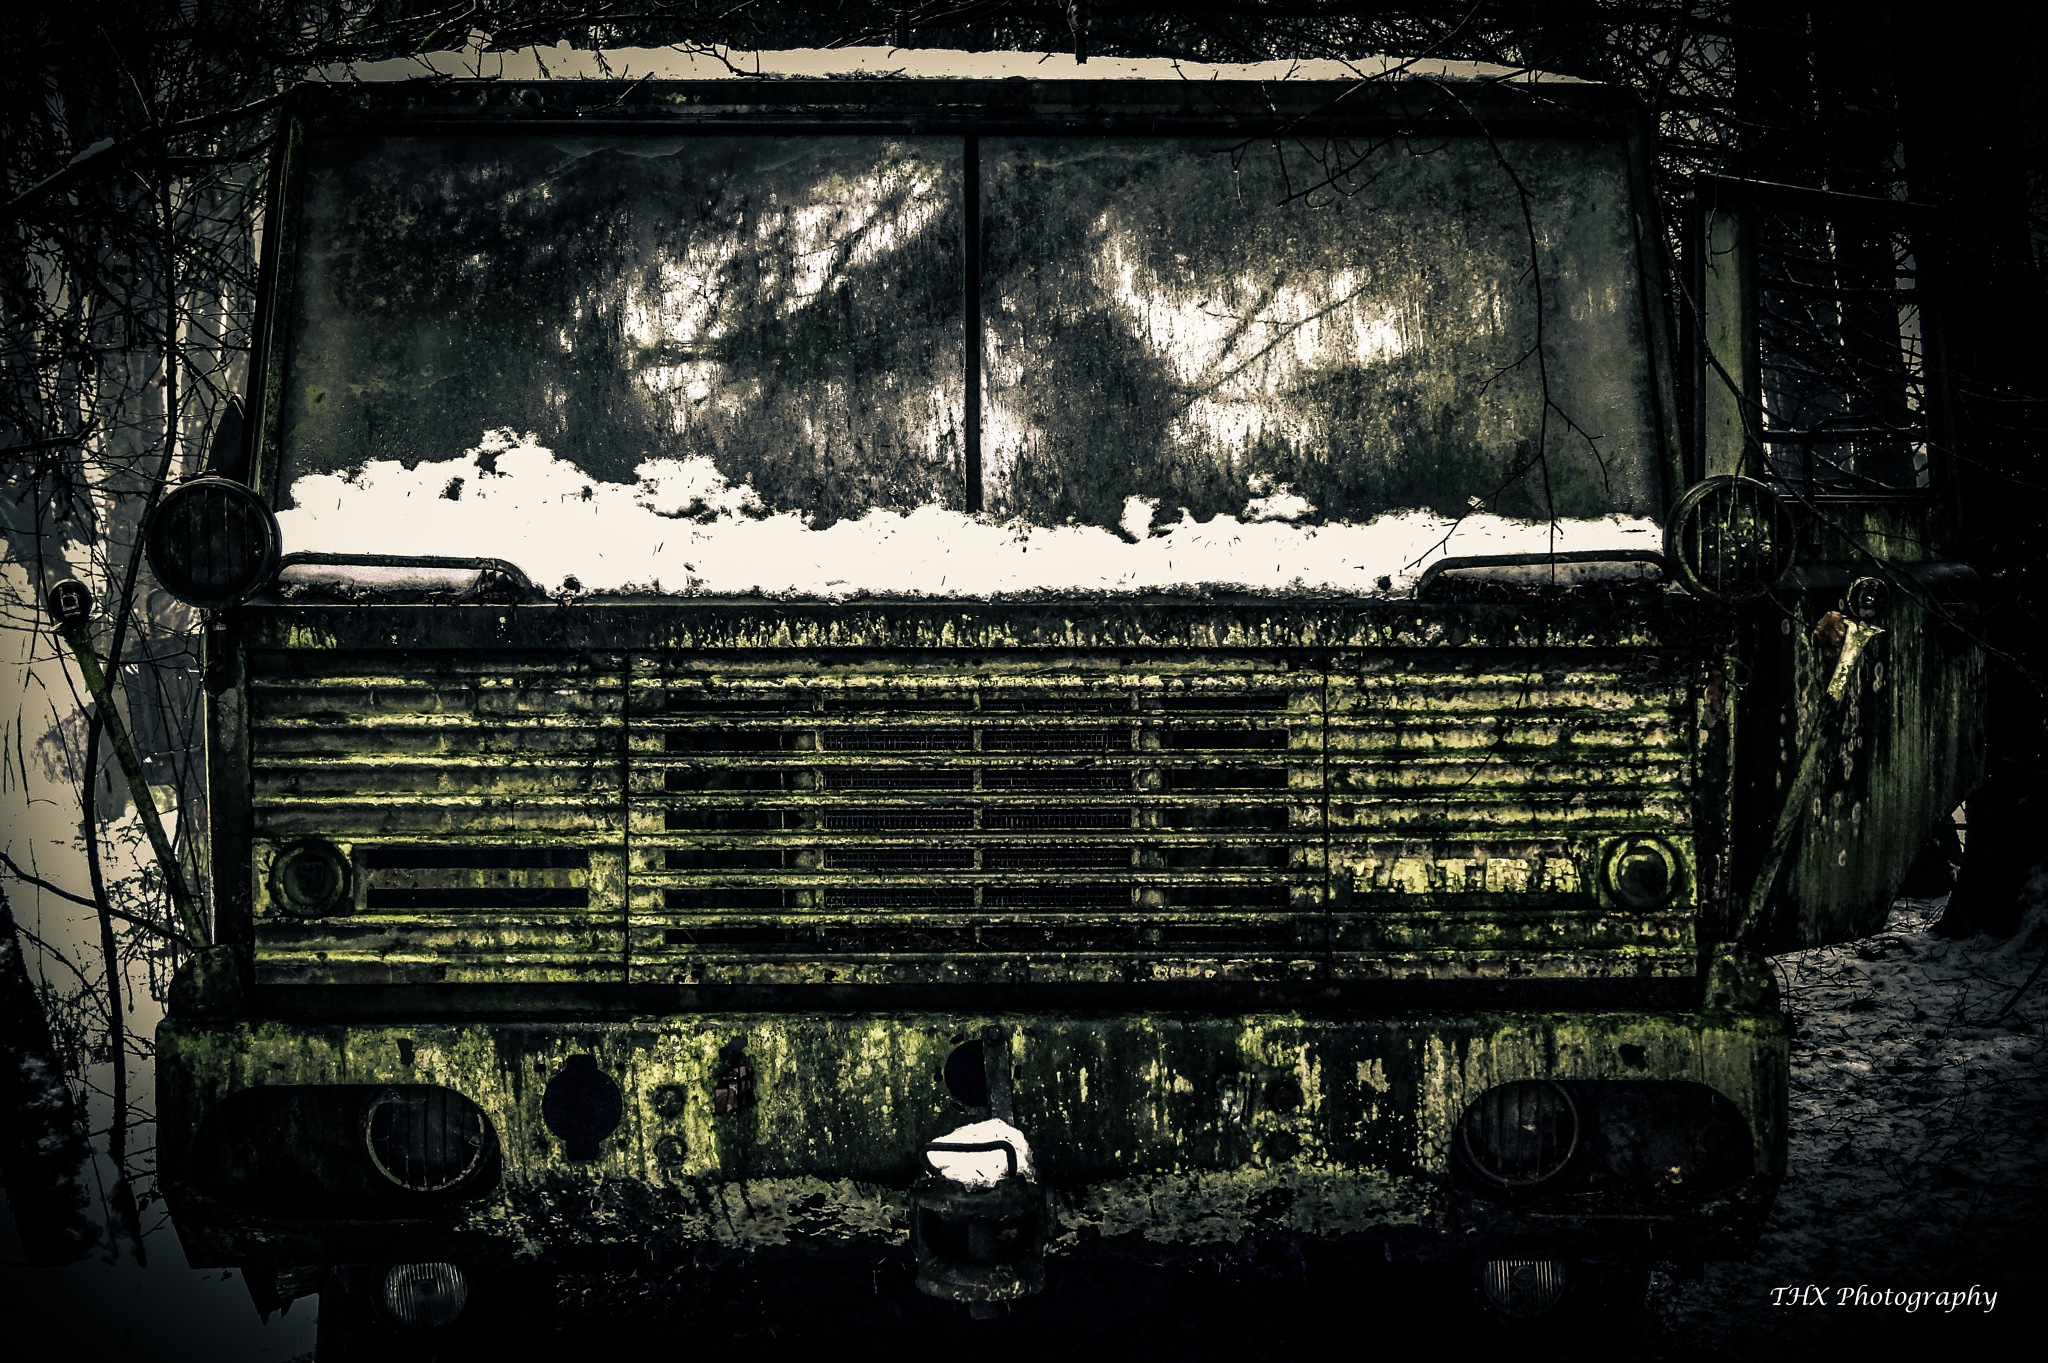 Destined to decay by Yves Teyssier